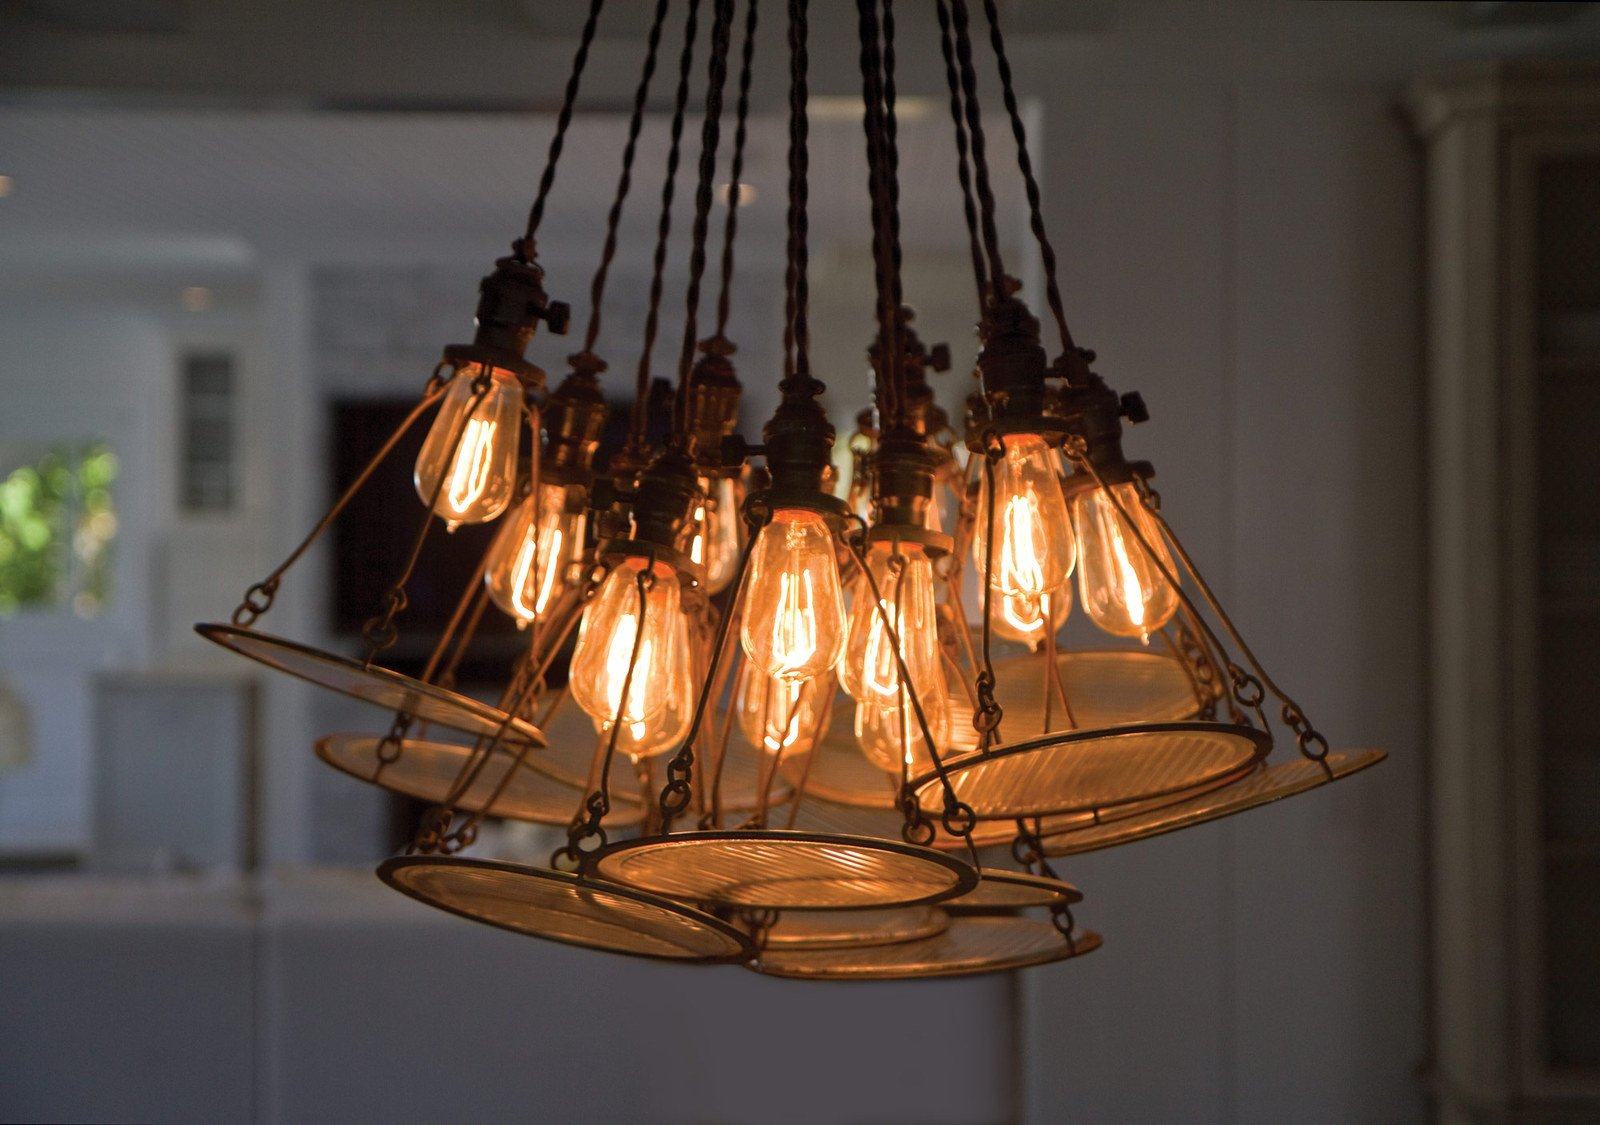 4 Pack Sale - Old Fashion Edison Light Bulbs - Five Star Rated - 60W Vintage Squirrel Cage Filament - 120 Volts - 230 Lumens - ST58 Teardrop - Dimmable Antique Amber Lighting - Warranty Included by Moonrock & Co. (Image #5)